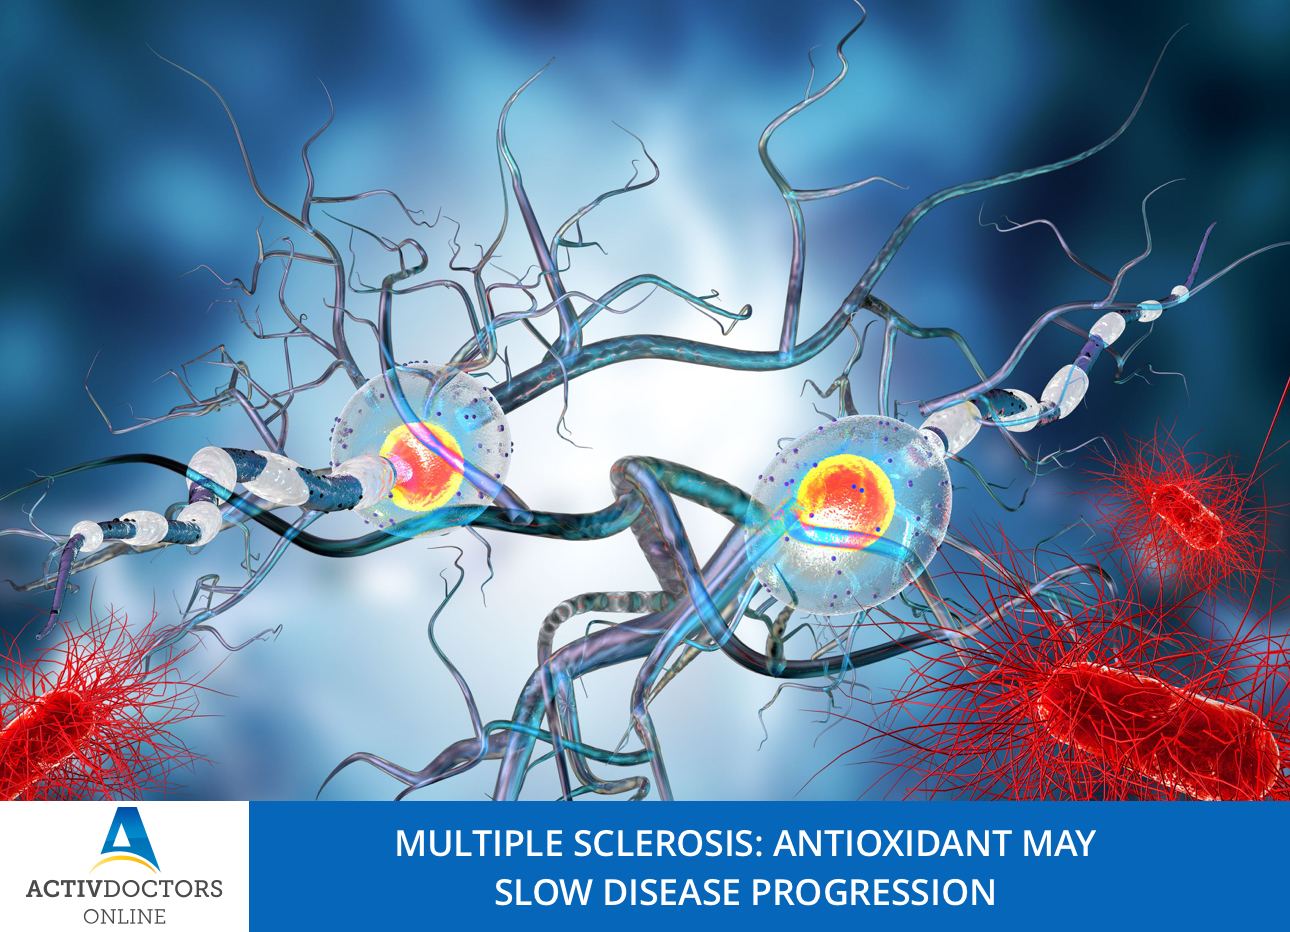 MULTIPLE SCLEROSIS: ANTIOXIDANT MAY SLOW DISEASE PROGRESSION